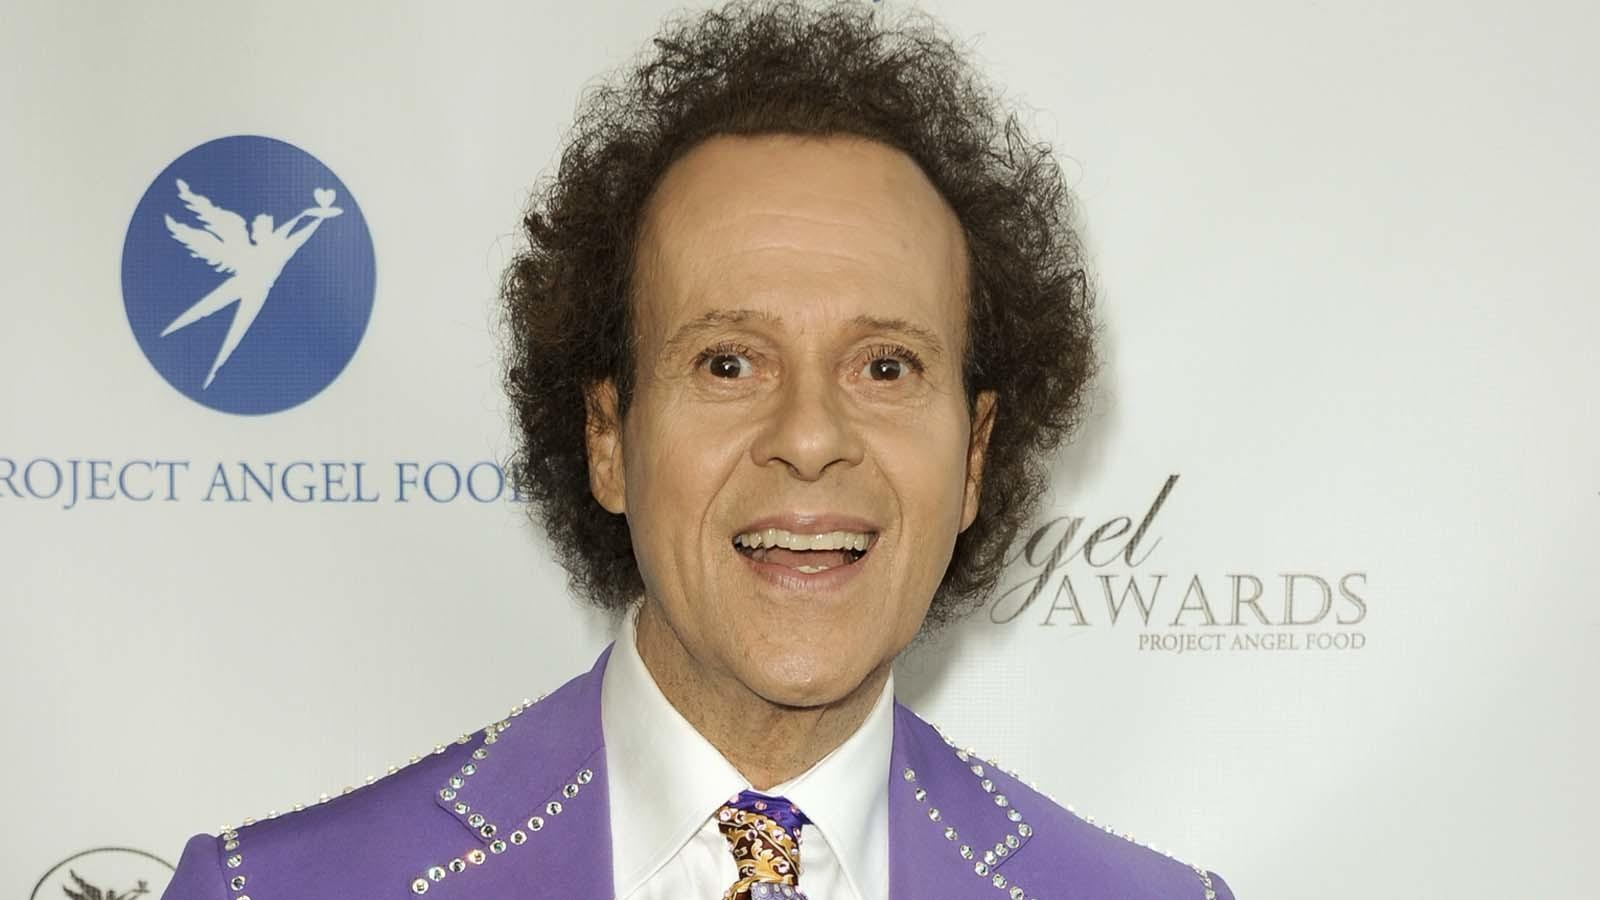 In a shocking development in the ongoing saga of Richard Simmons 76ef2de30